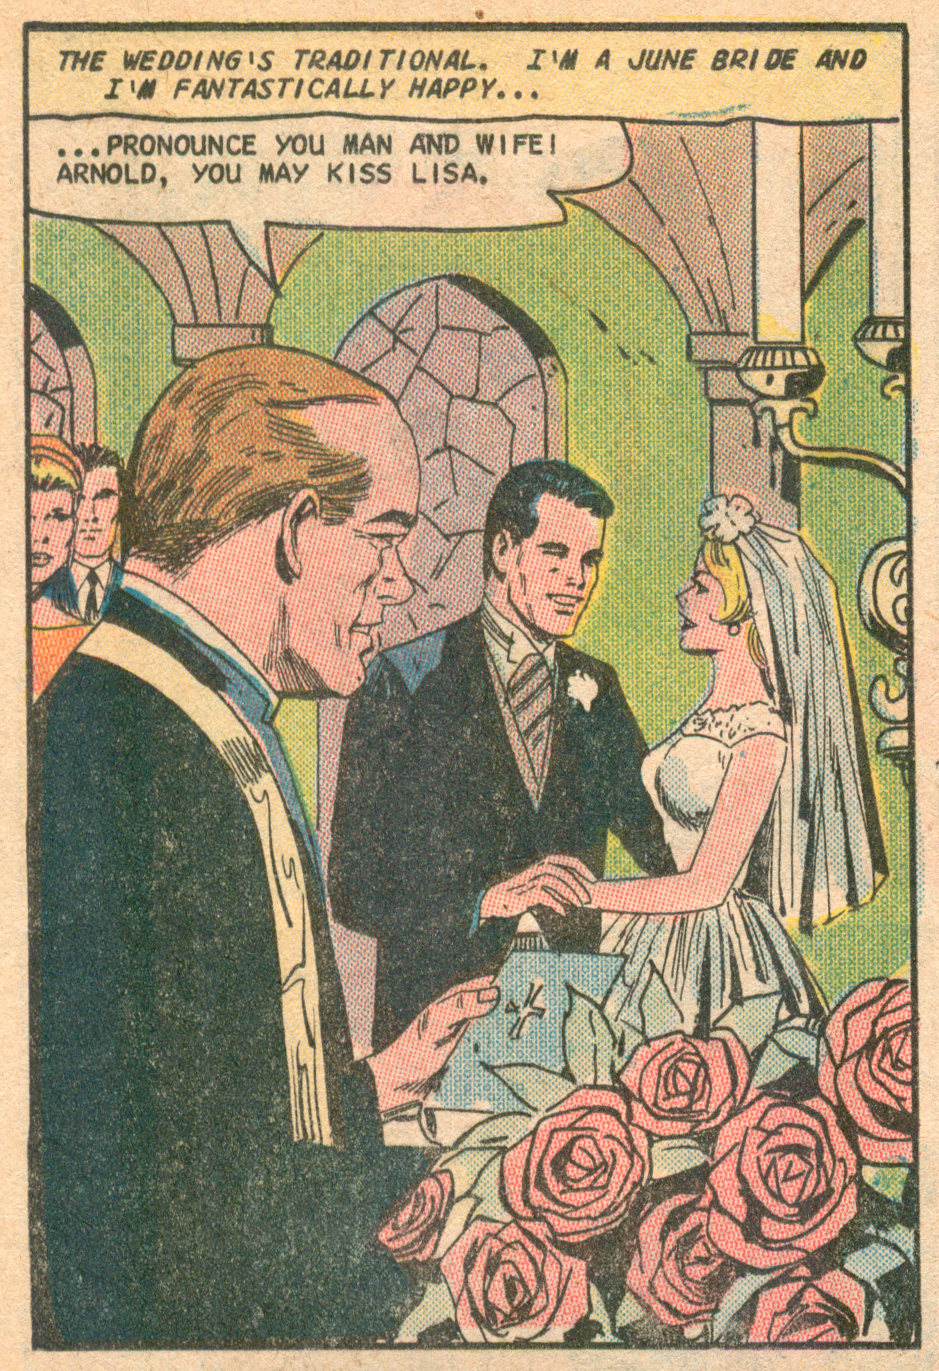 """A Gentle Man to Love""  Just Married  #54 (September 1967), Pencils: Charles Nicholas, Inks: Vince Alascia, Charlton Comics."